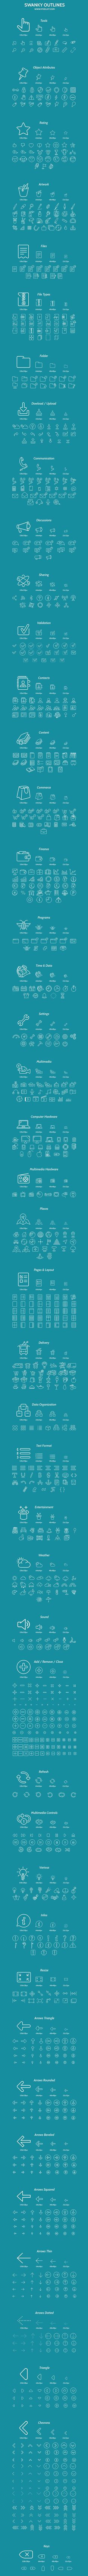 A vector outline icon set that will fit like a glove on your flat or metro designed website or application. One thing is for certain, the 700 icons divided in 45 categories for easy finding will finally satisfy your icon needs. You name an icon and we bet…